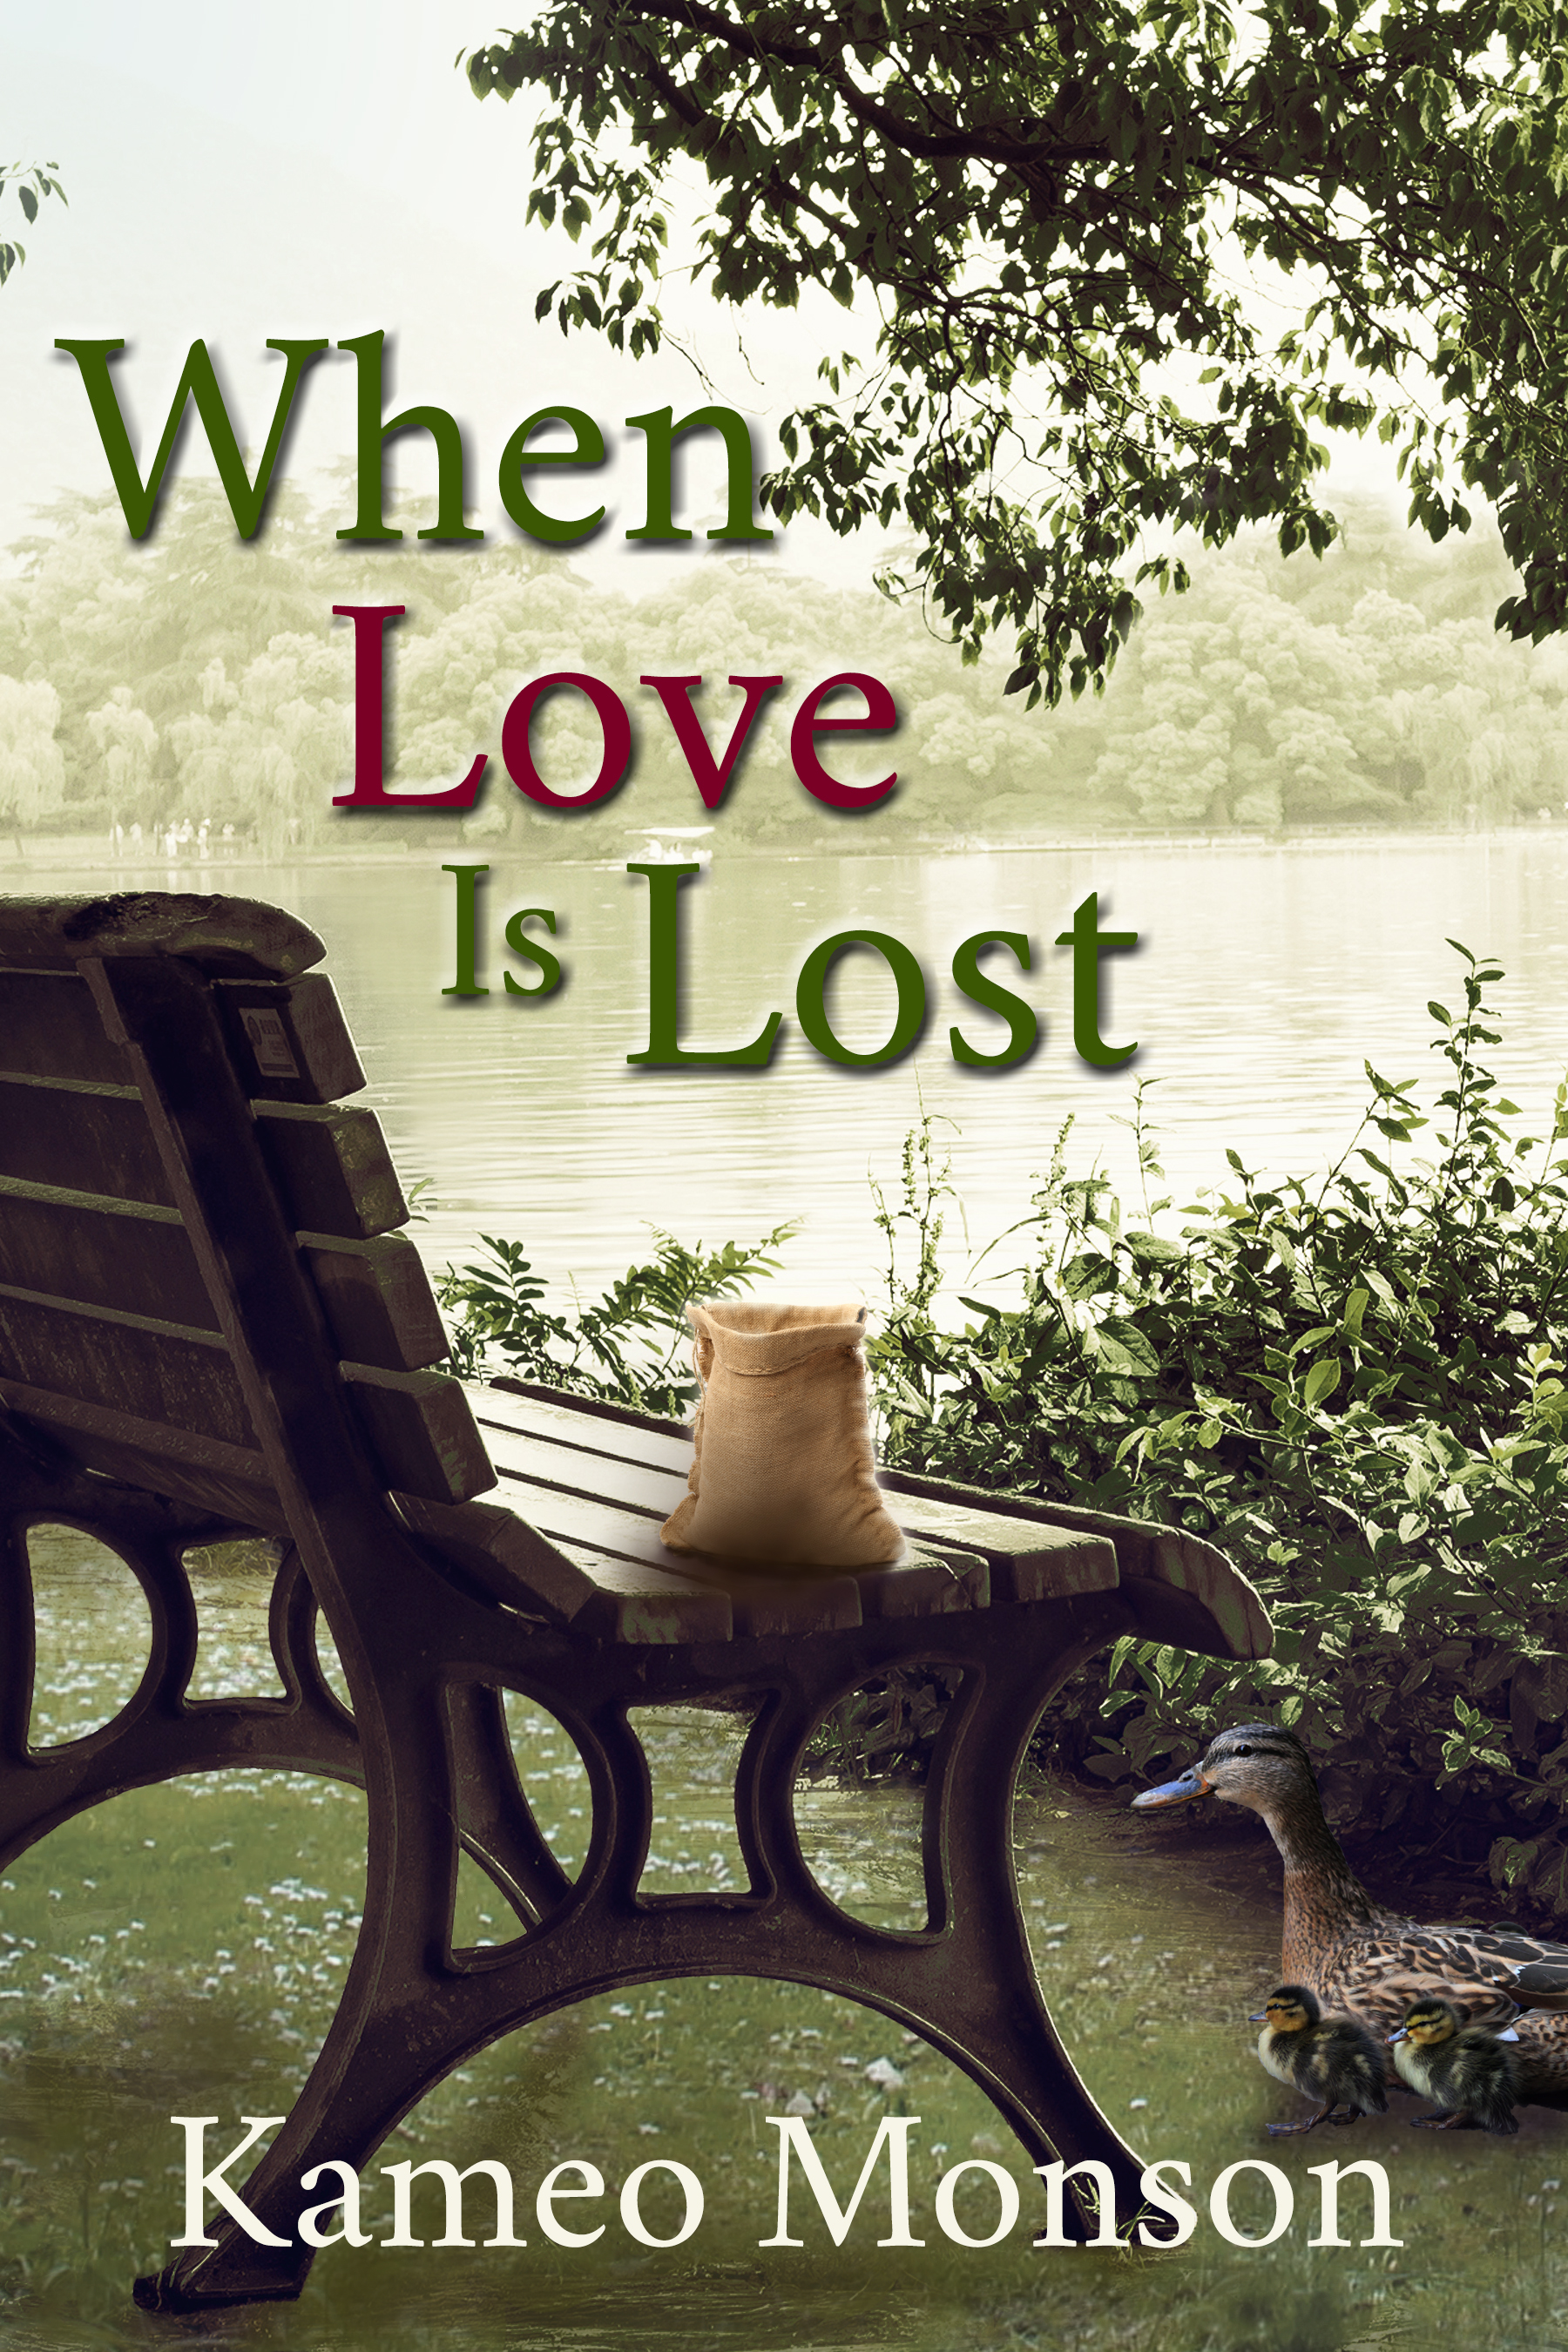 When Love Is Lost Release Day Celebration!